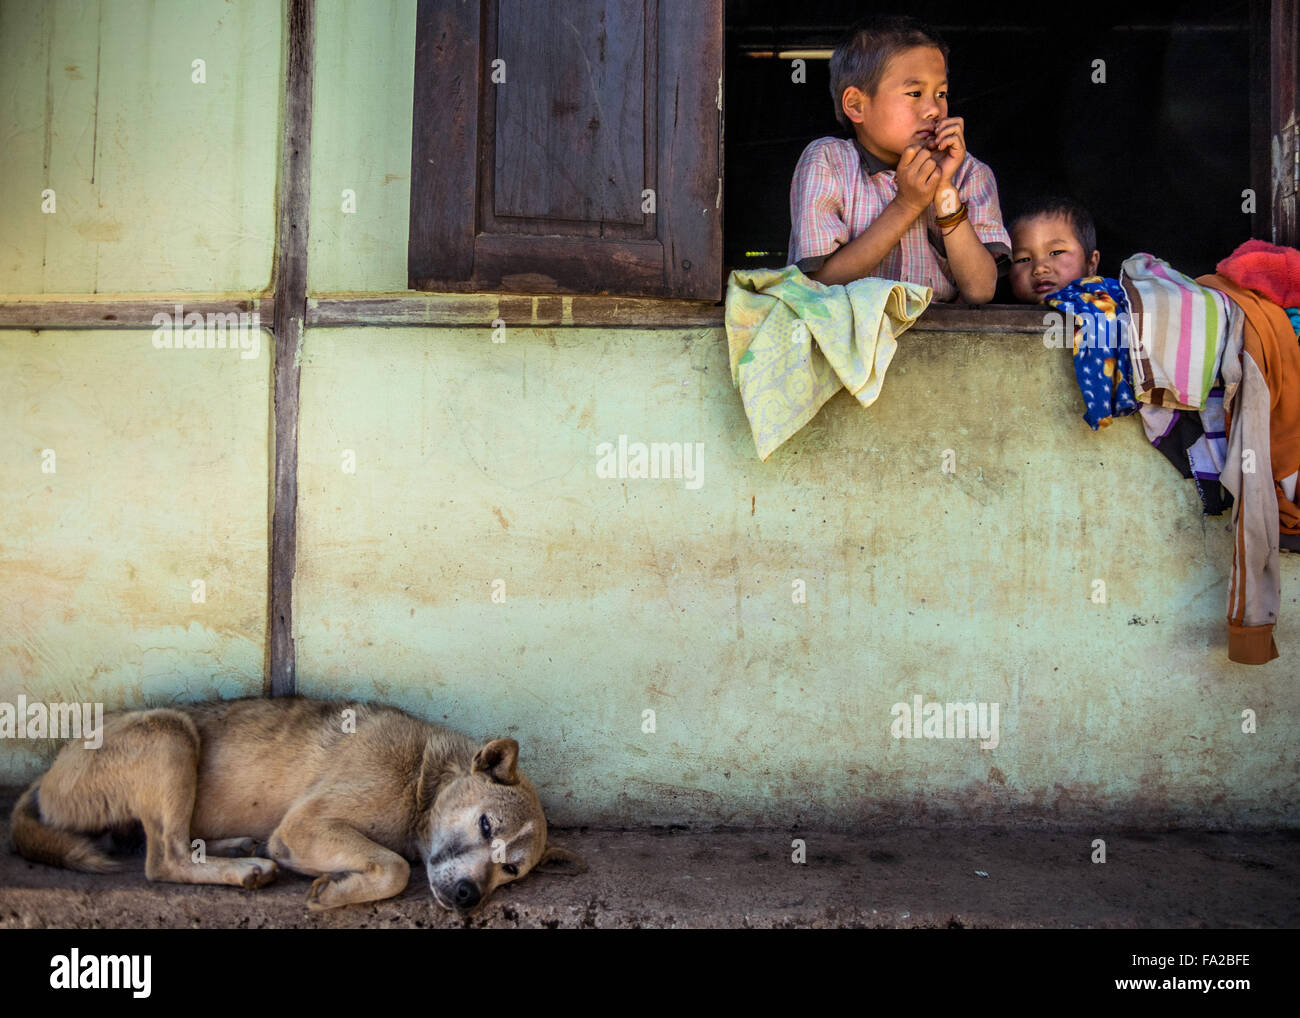 Children of Myanmar. (Shan State, Myanmar, Burma) Stock Photo